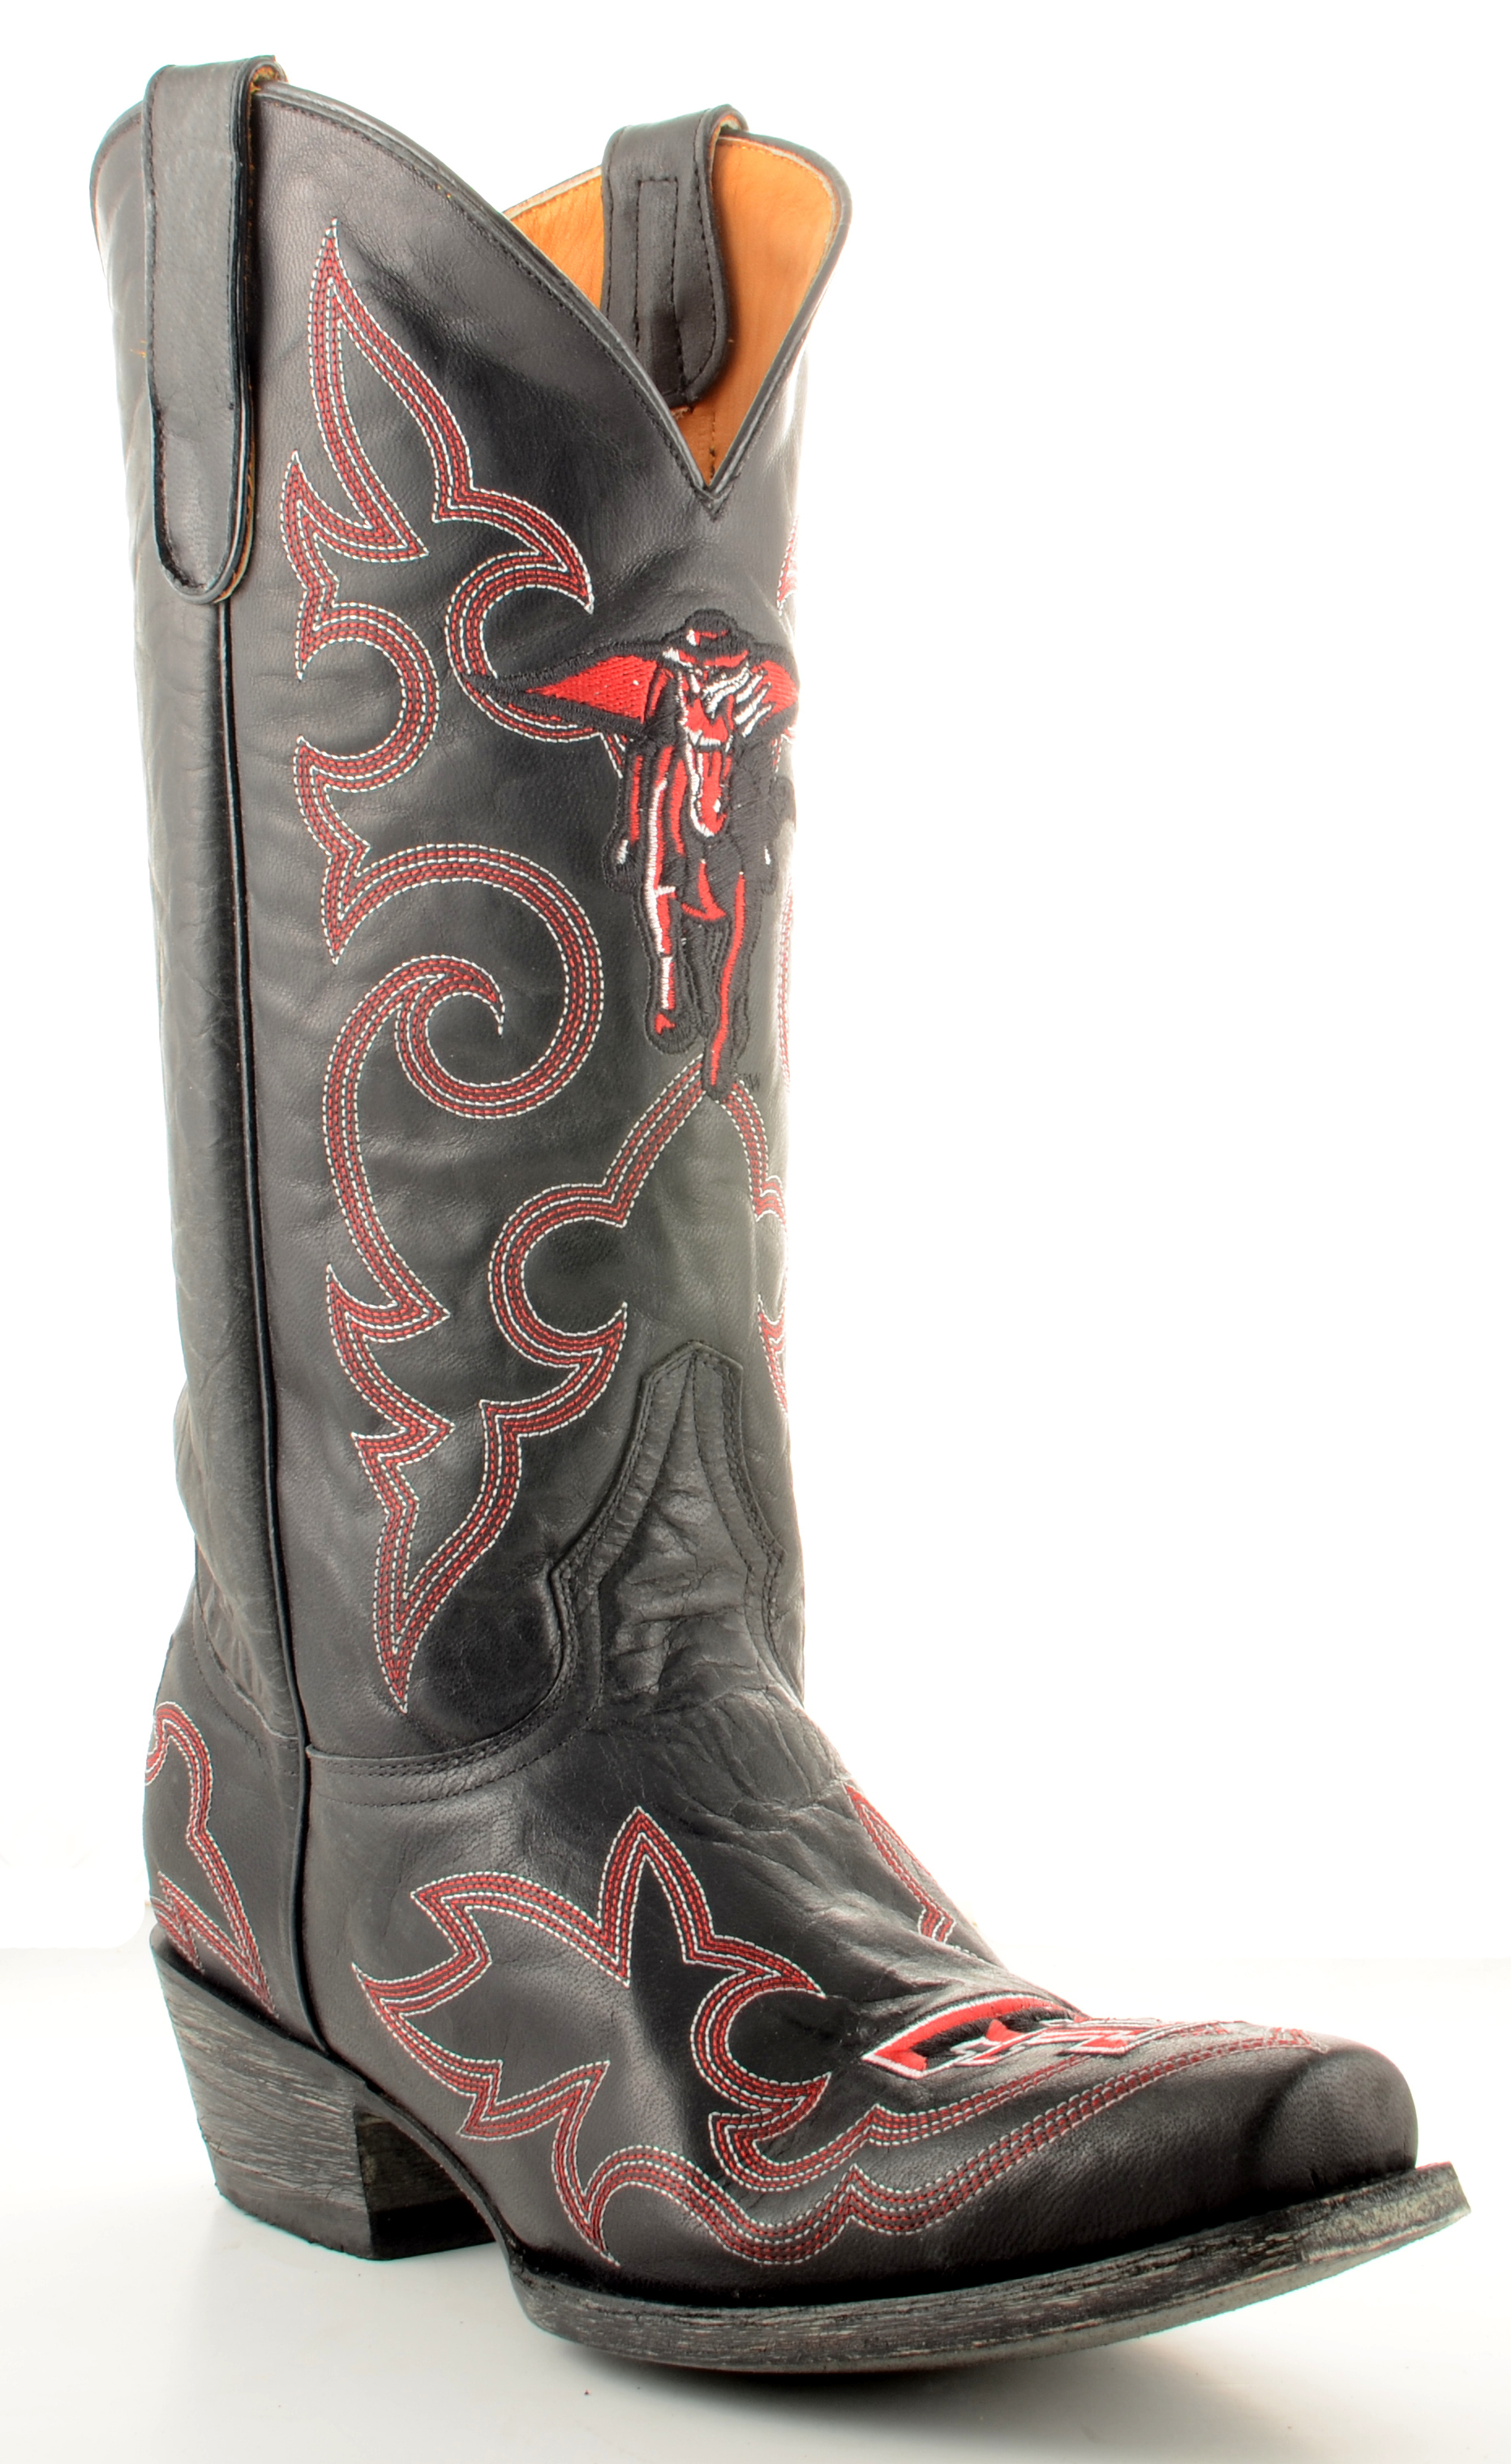 Gameday Boots Mens Leather Texas Tech Cowboy Boots by GameDay Boots